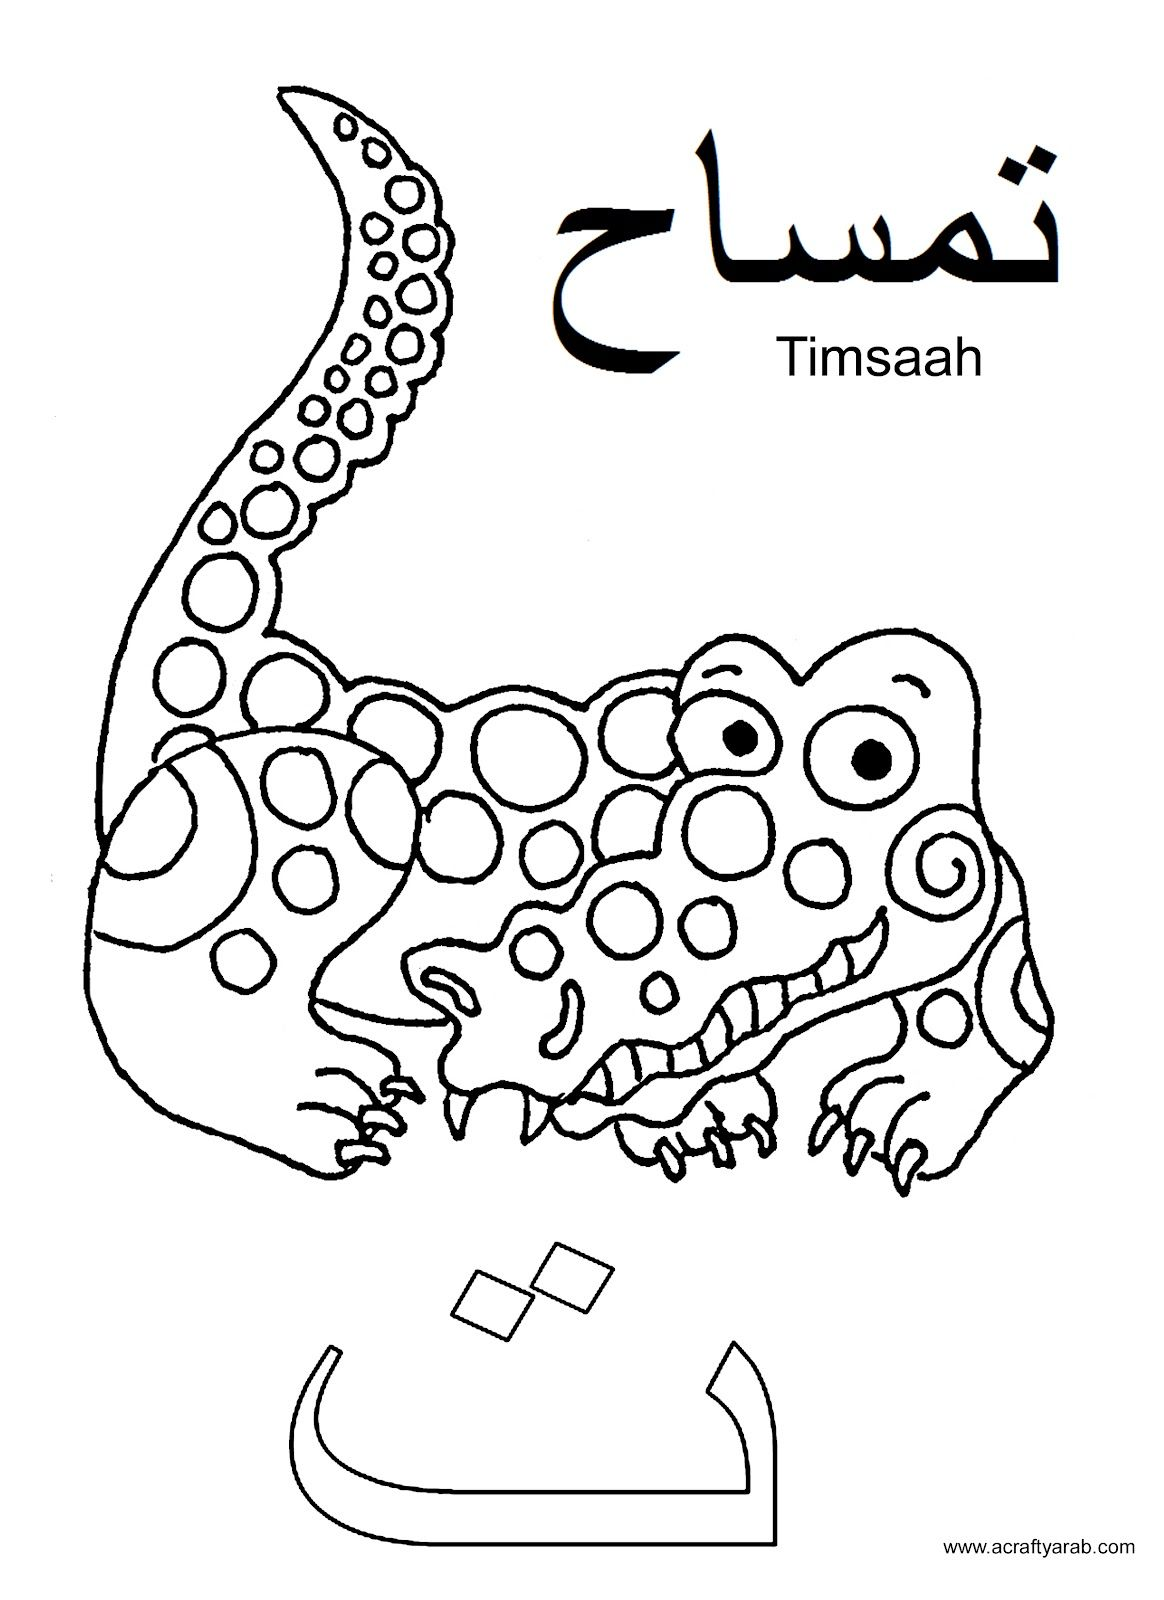 Kleurplaten Arabische Letters.A Crafty Arab Arabic Alphabet Coloring Pages Ta Is For Timsaah